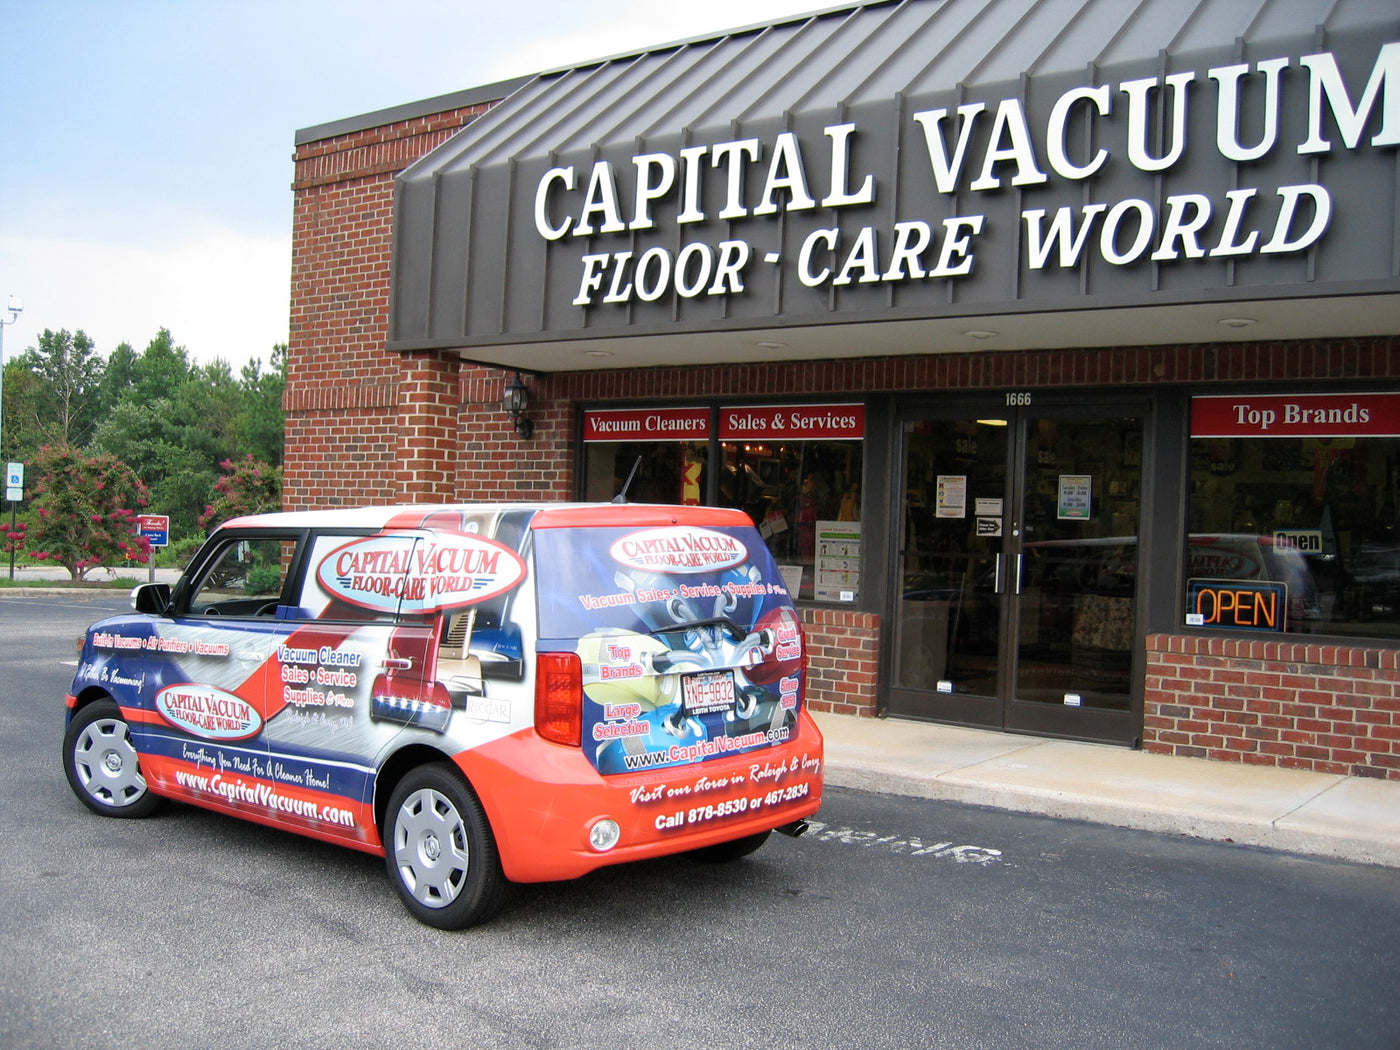 Capital Vacuum Floor-Care World Vacuum Cleaner Stores in Raleigh NC & Cary NC